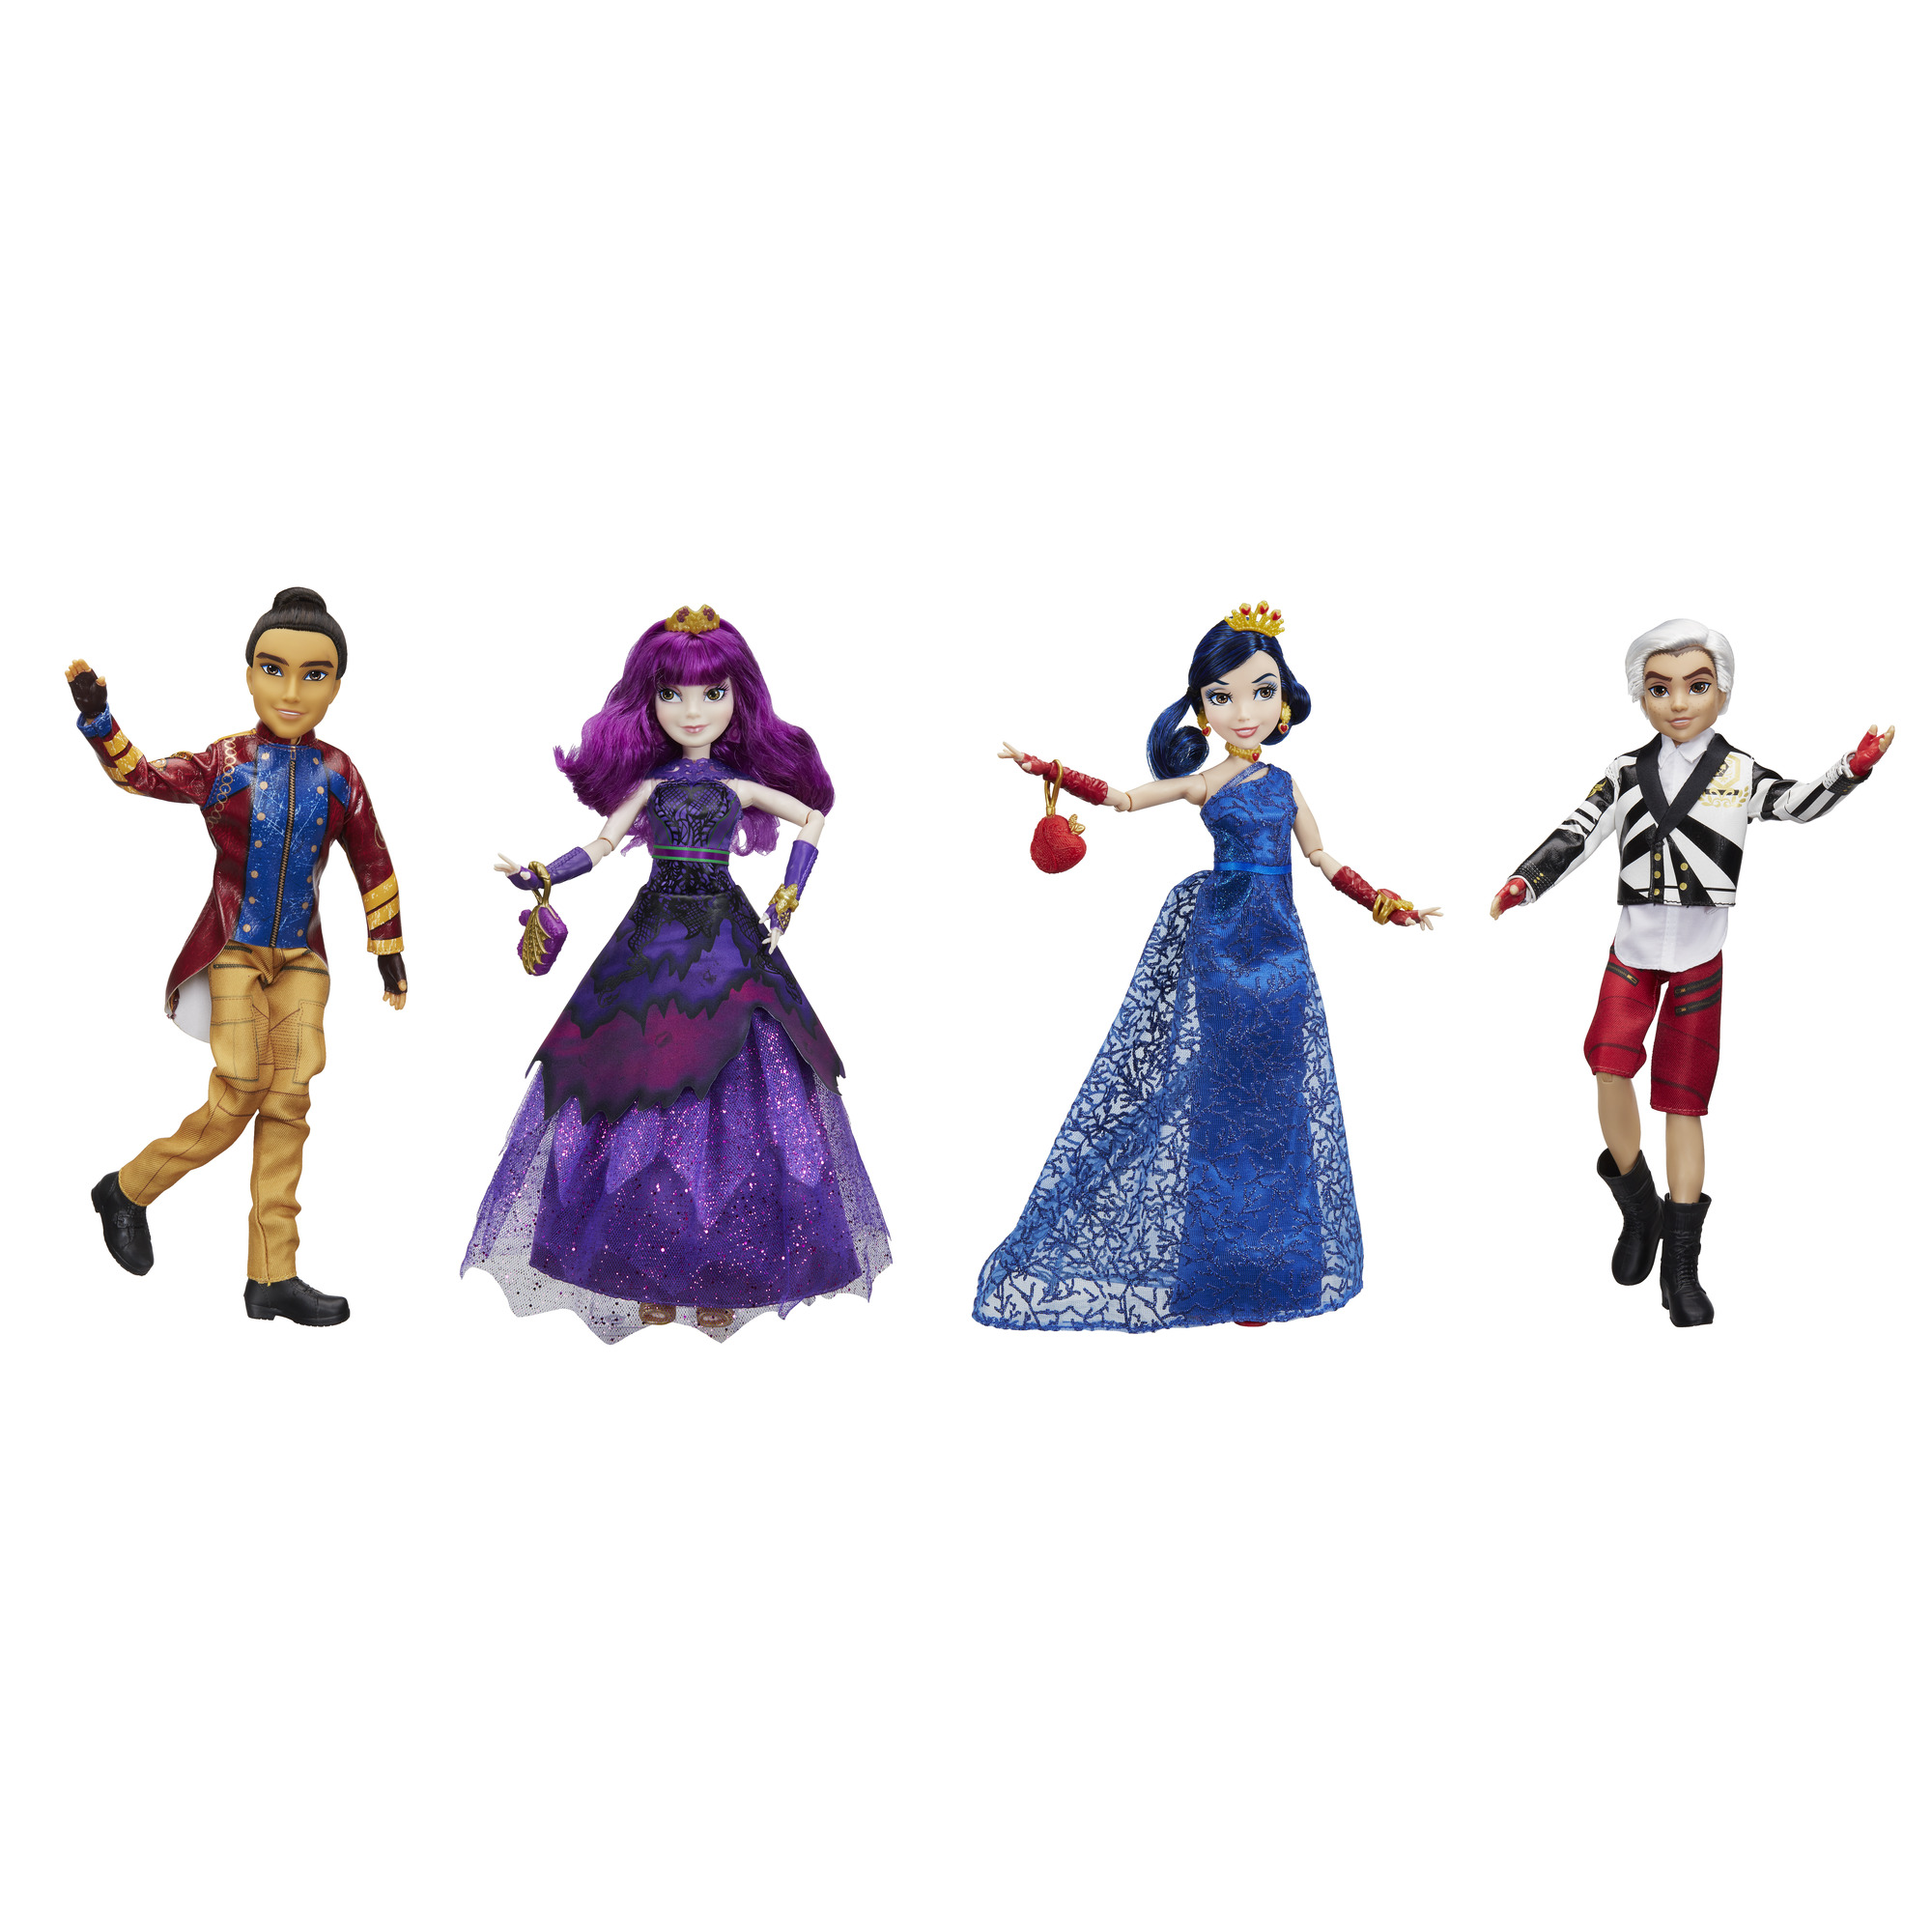 Disney Descendants Isle of the Lost 4-Pack: Mal, Evie, Carlos, & Jay by Hasbro